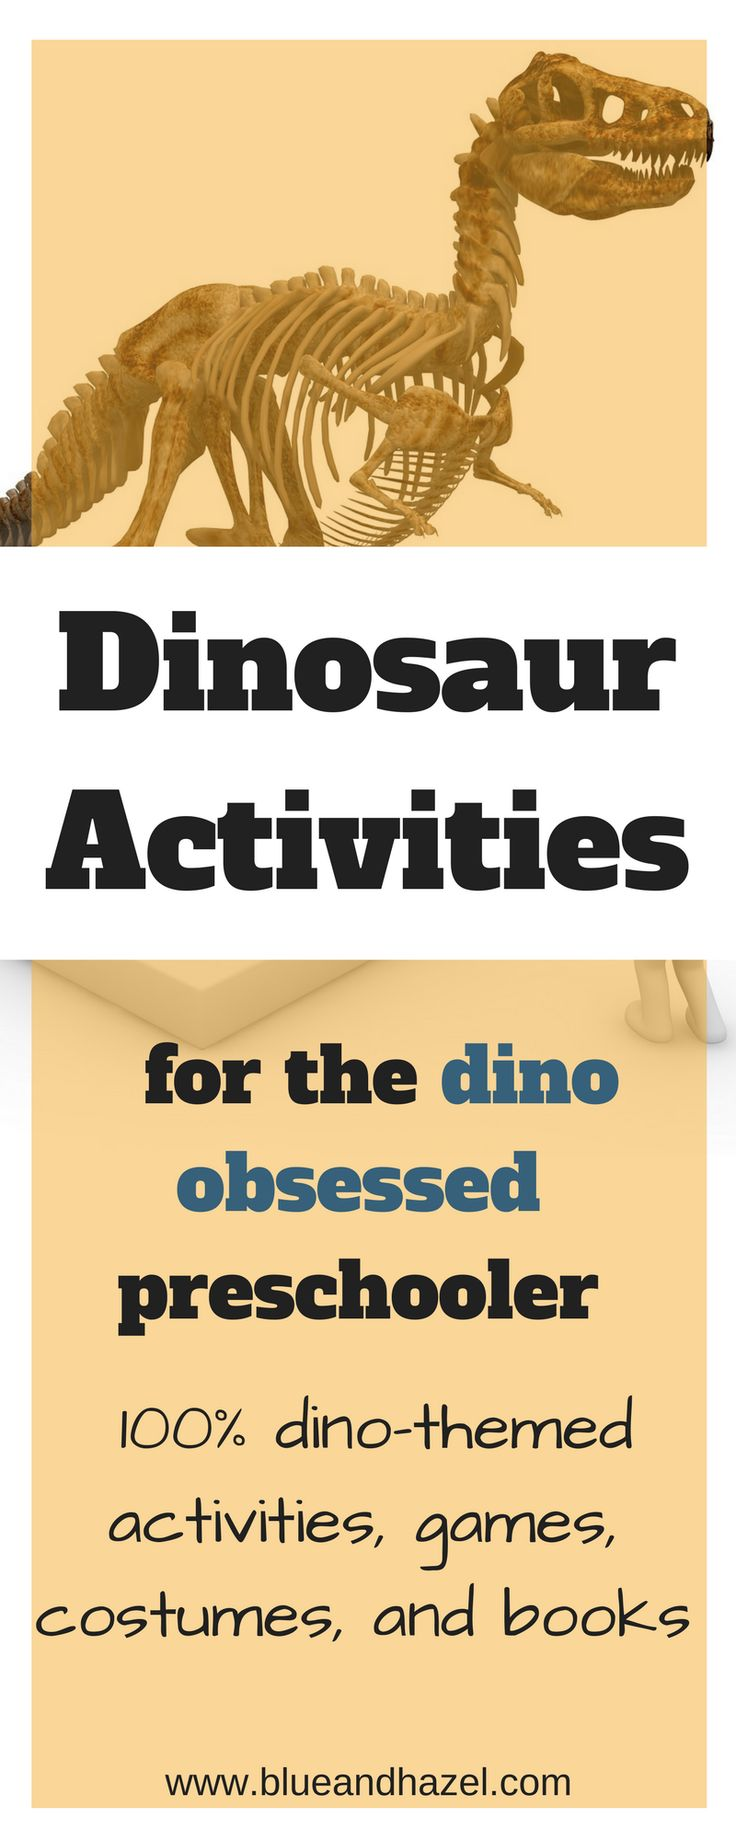 Here are dinosaur activities preschoolers will play with for hours! Including dinosaur games, dinosaur costumes, dinosaur books, and dinosaur activities for preschoolers! An ultimate list of dinosaur activities kids will love. #dinosaur #blueandhazel #dinosauractivities #toddler #kidactivities